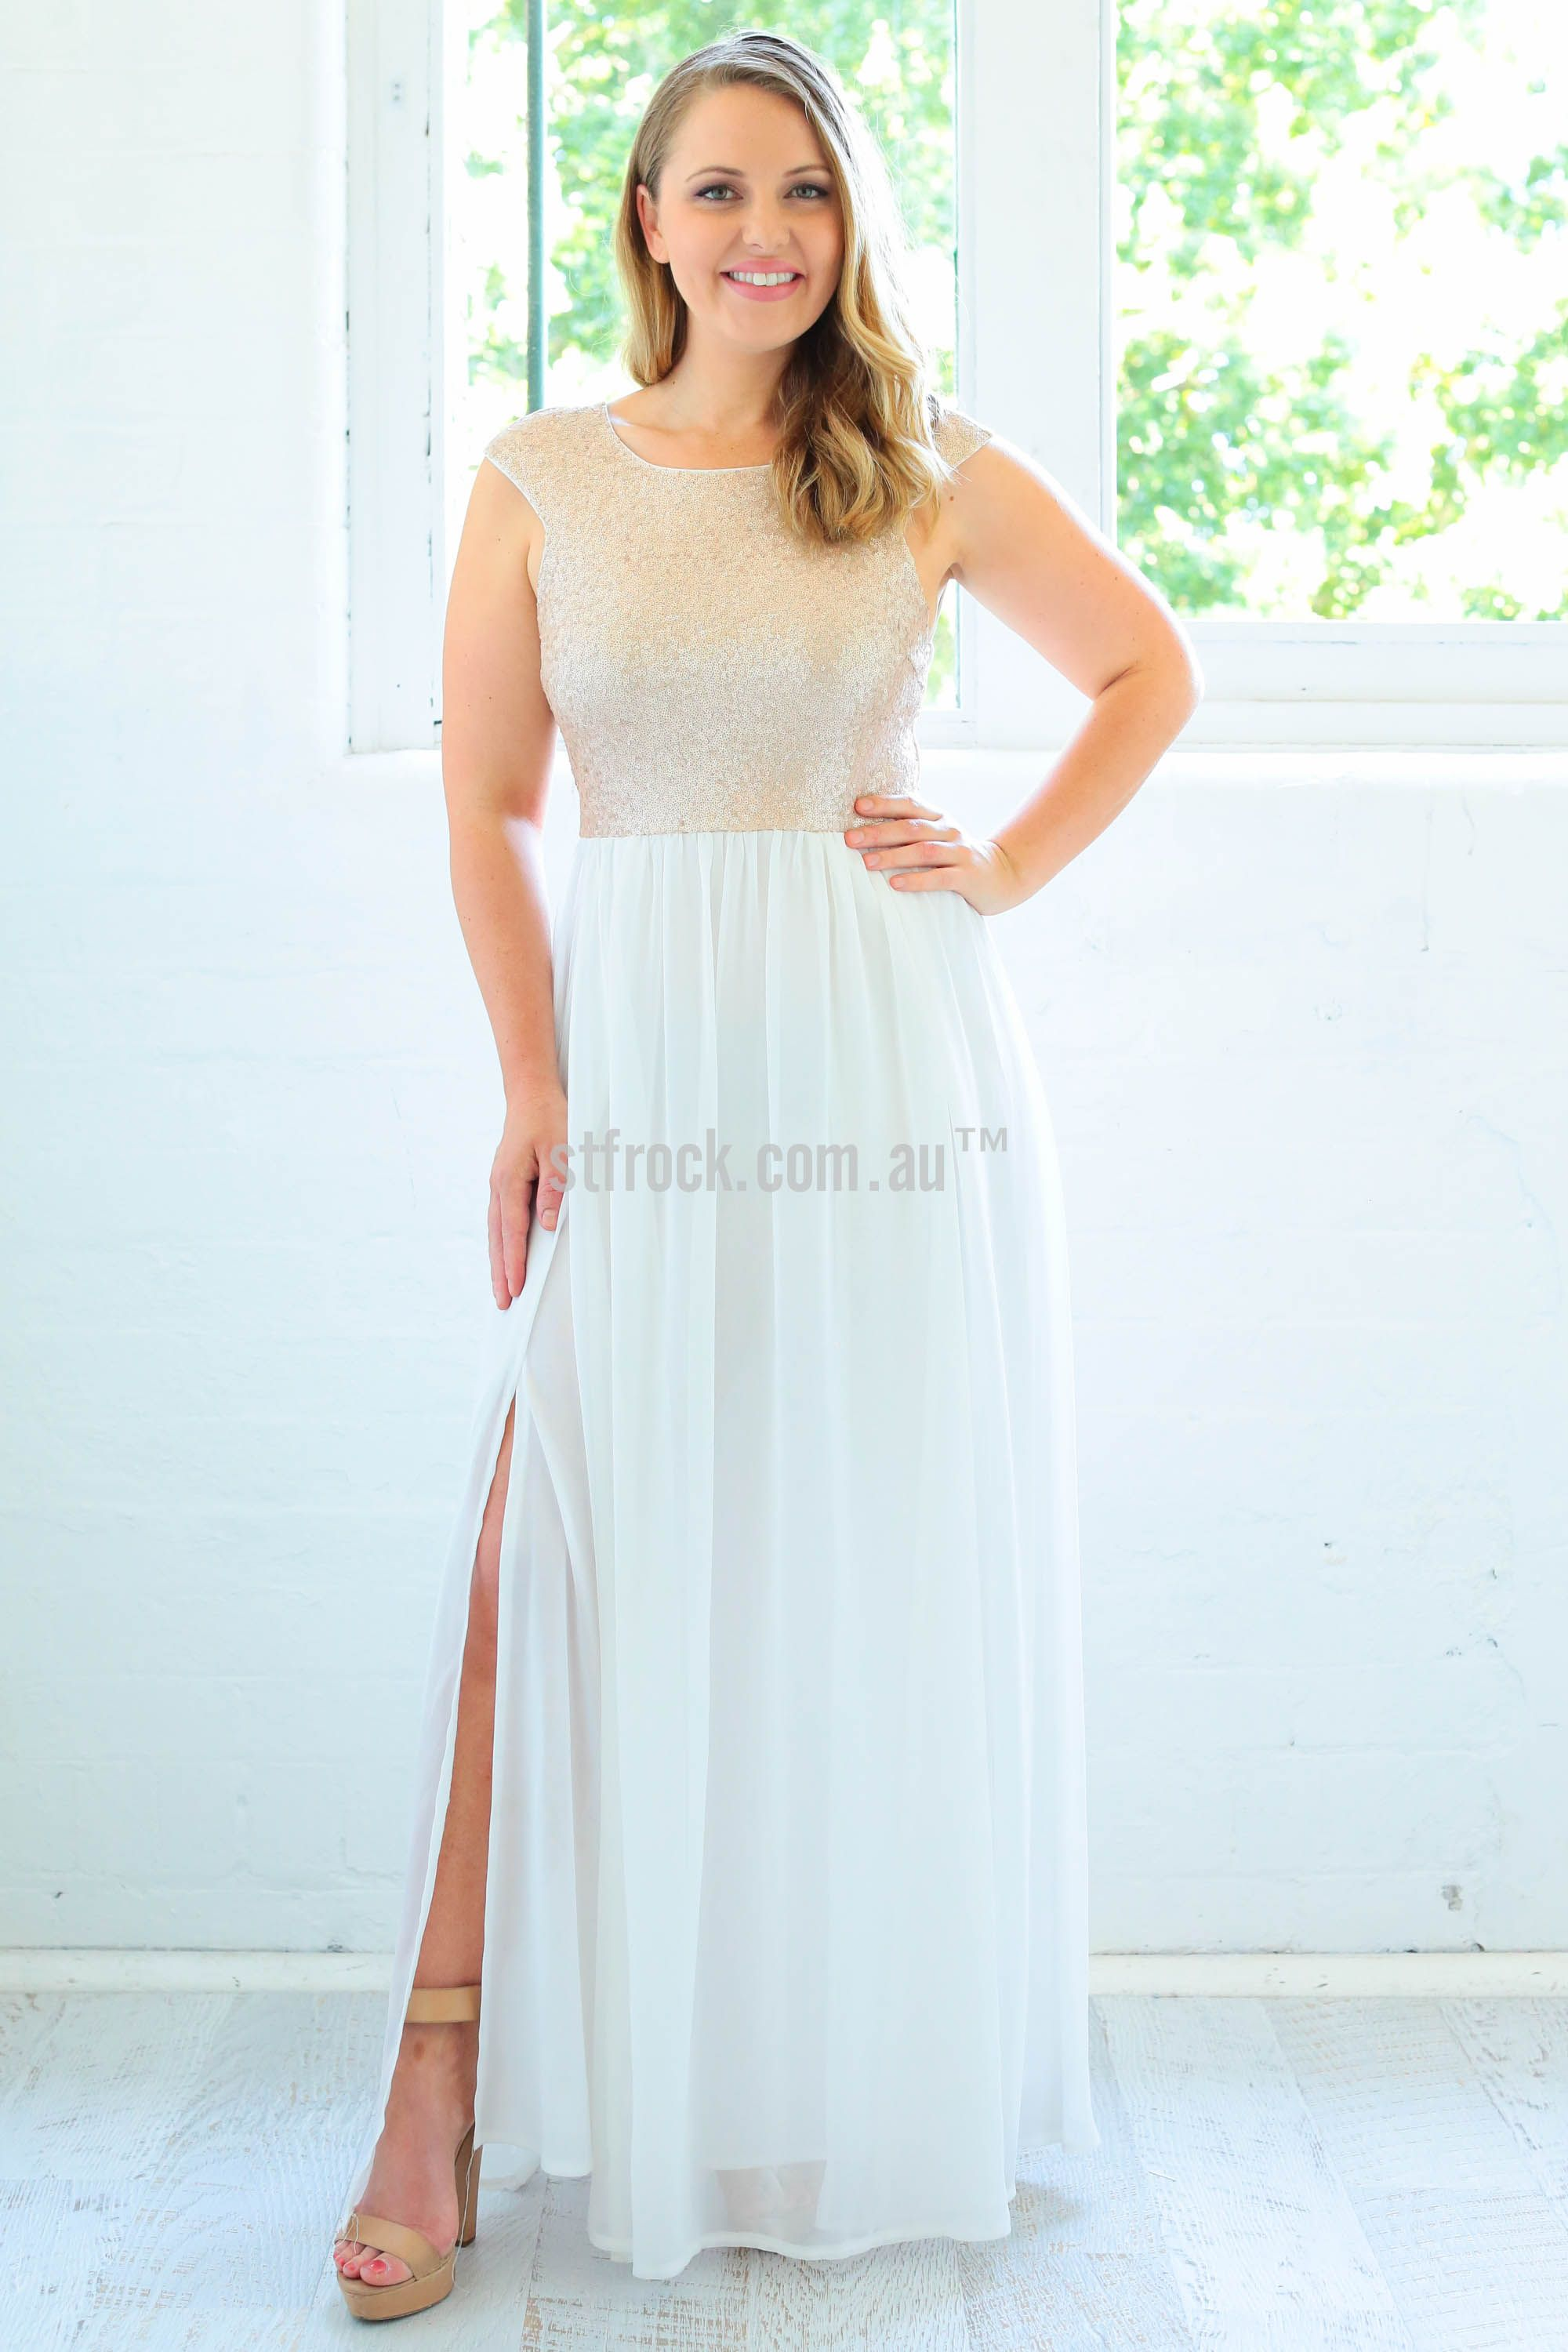 Chasing Kate Verity Sequin Maxi Dress in White $99.90 Chasing Kate ...